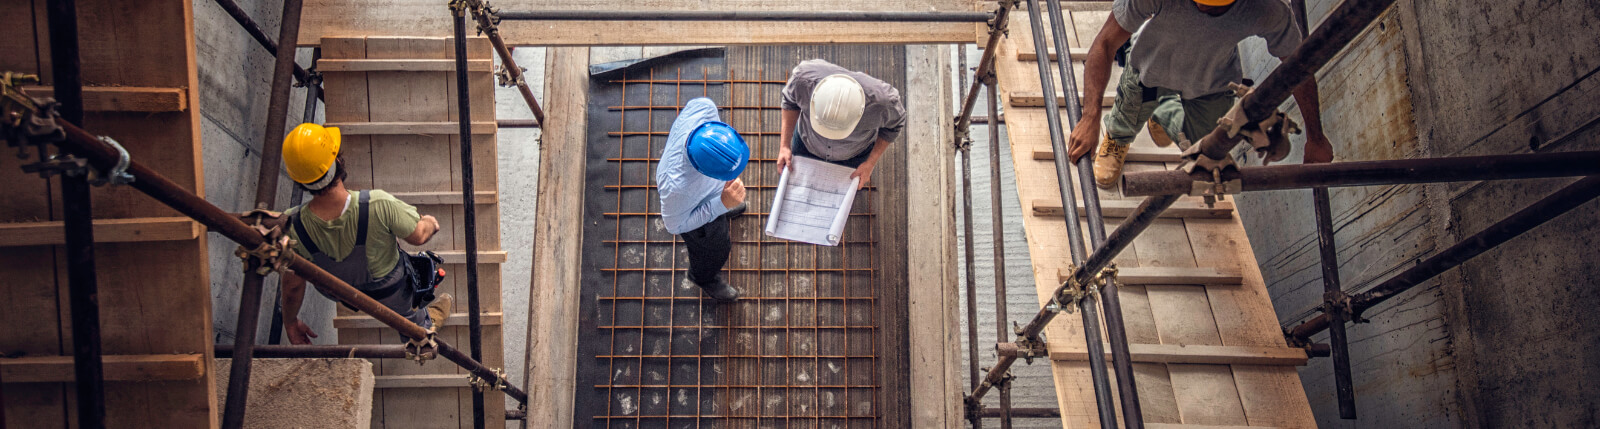 bird's eye view of men looking at plans on construction site